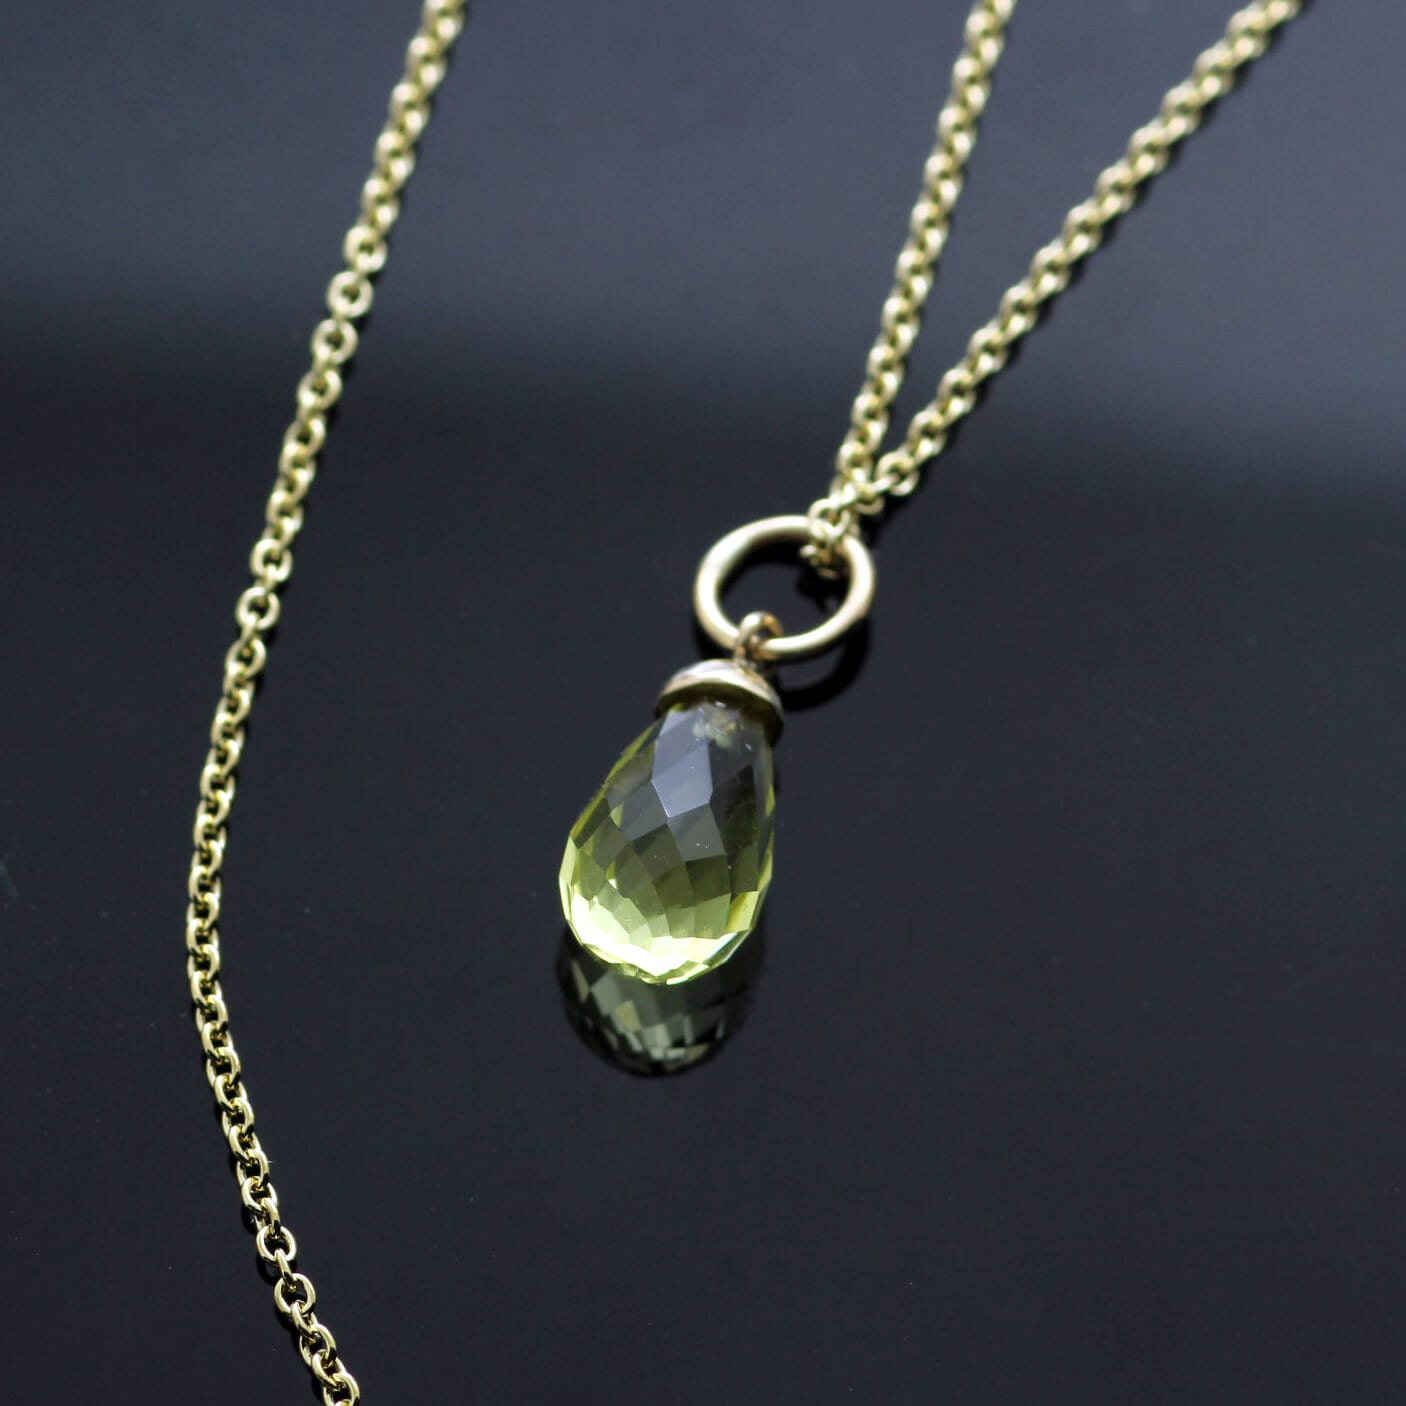 Gemstone Yellow Gold modern necklace with Lemon Quartz briolette